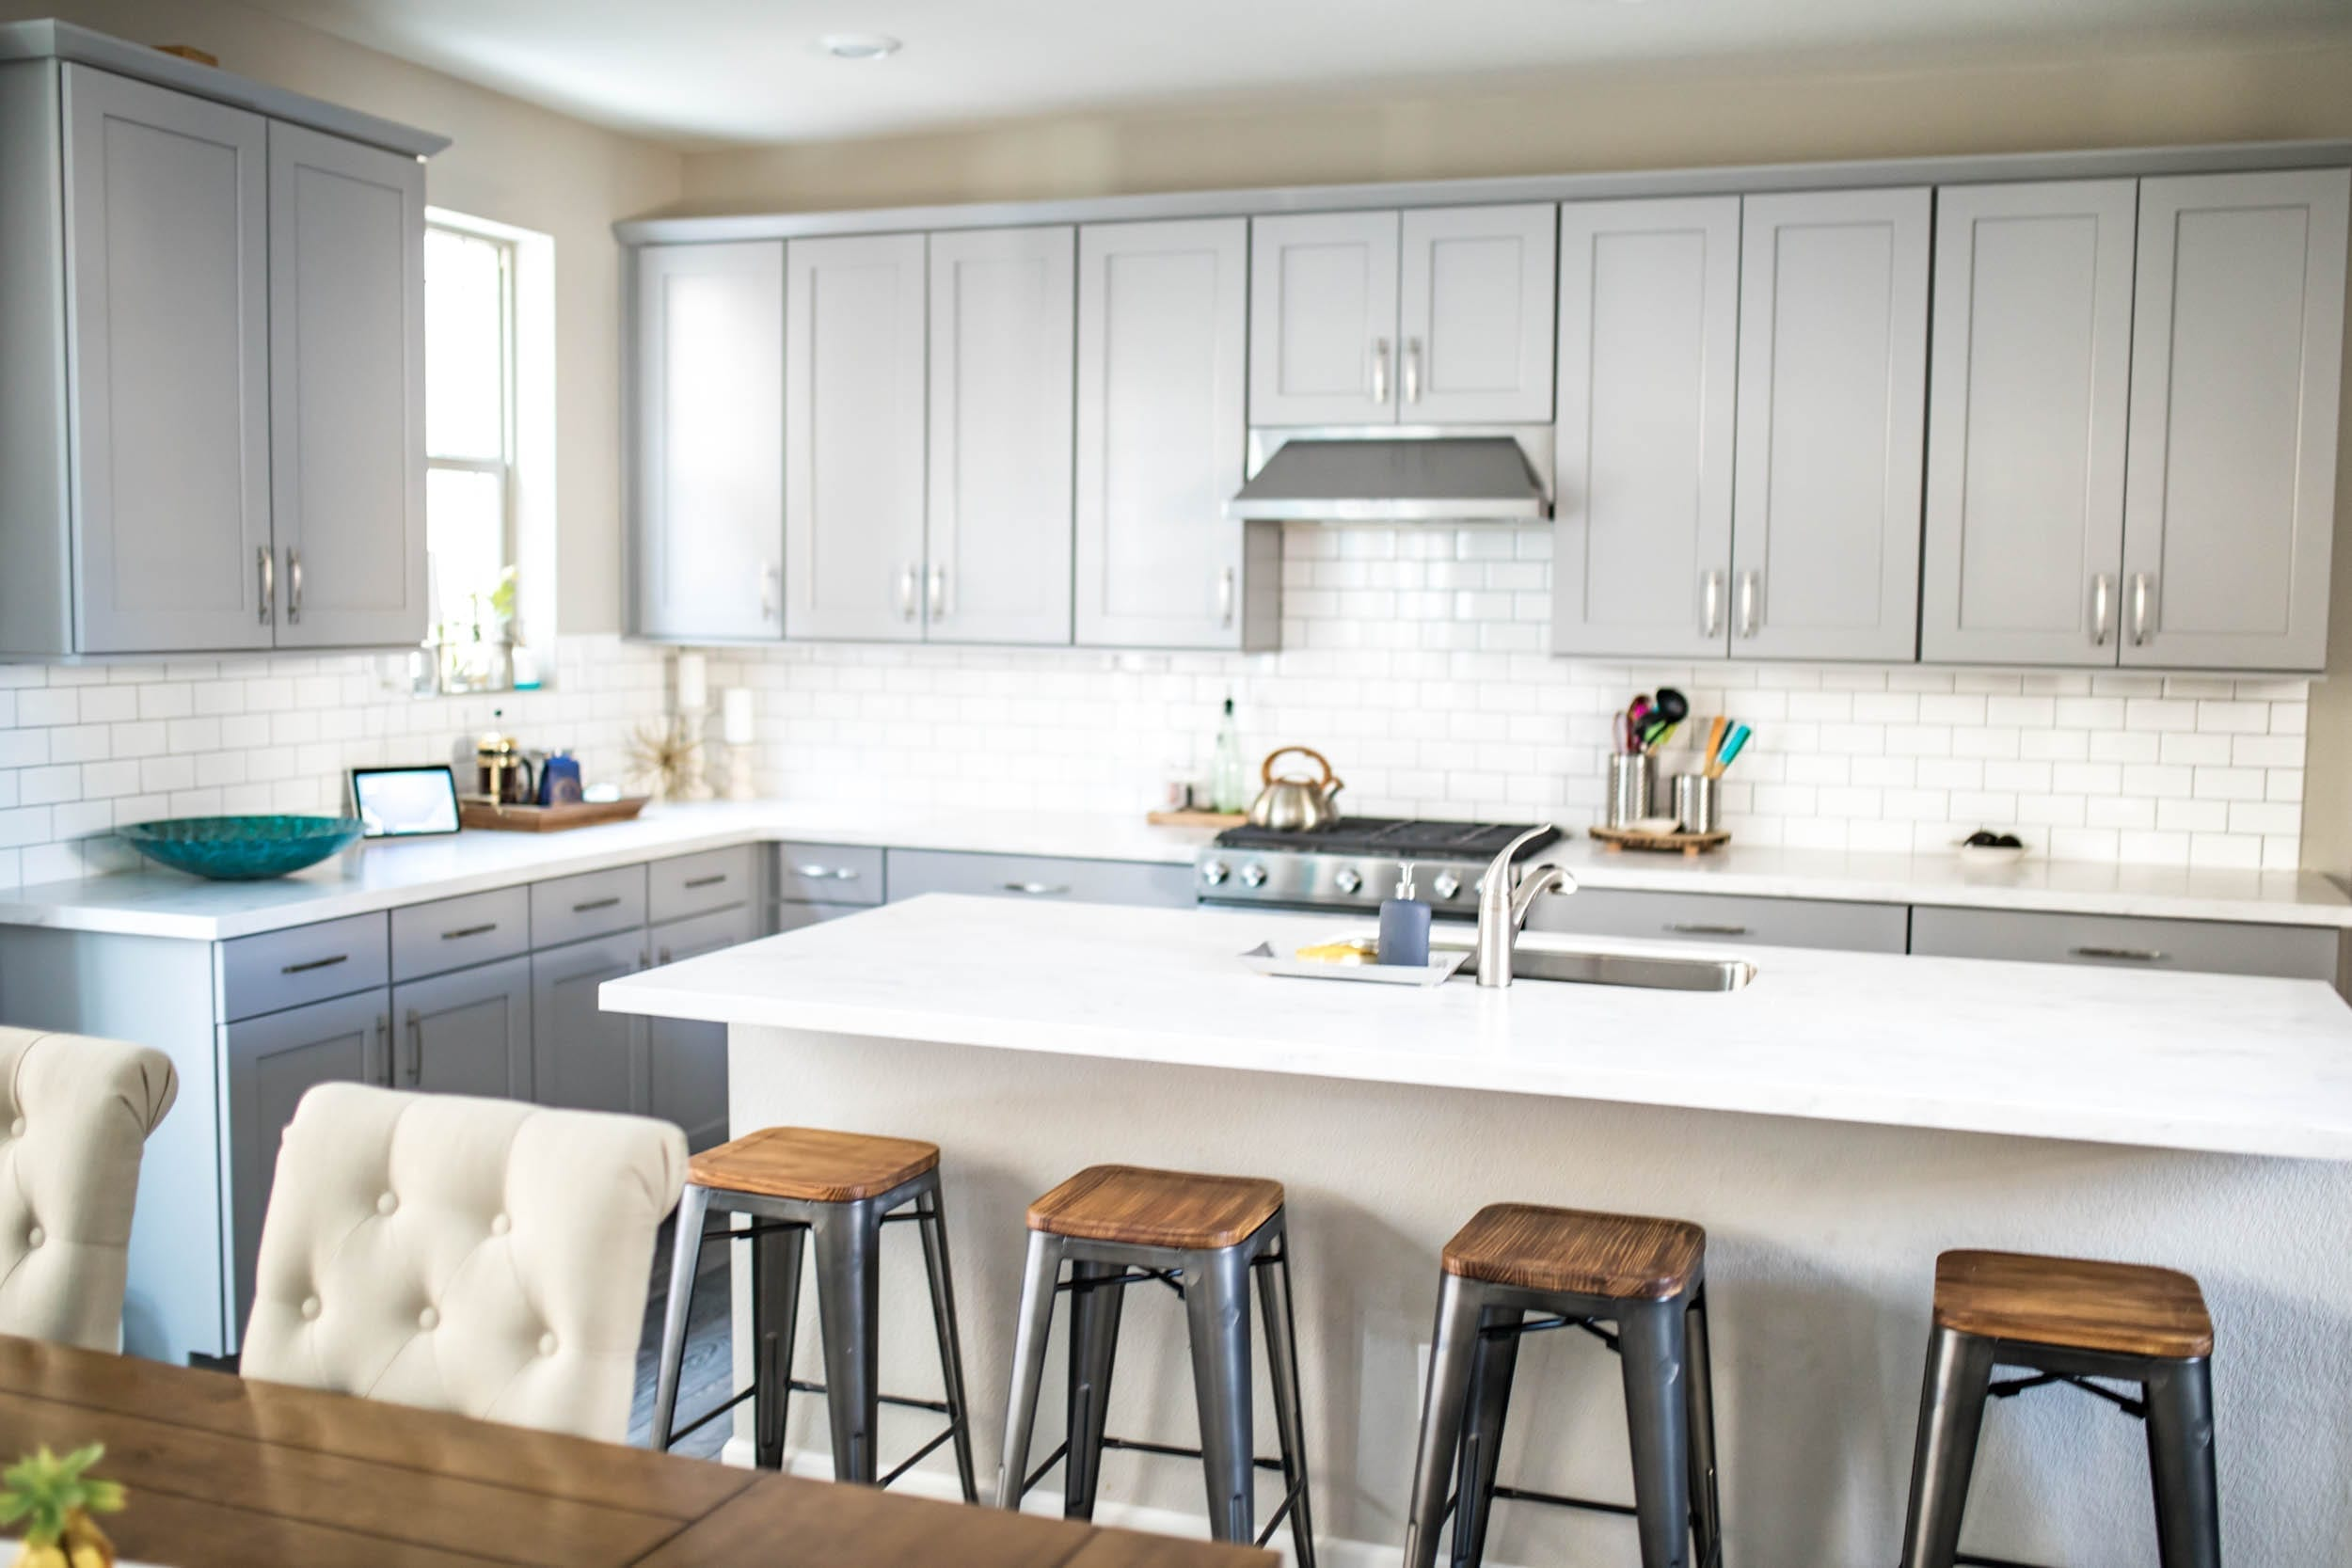 - Backsplash Tile Refresh: How To Make White Tile Pop For Under $20